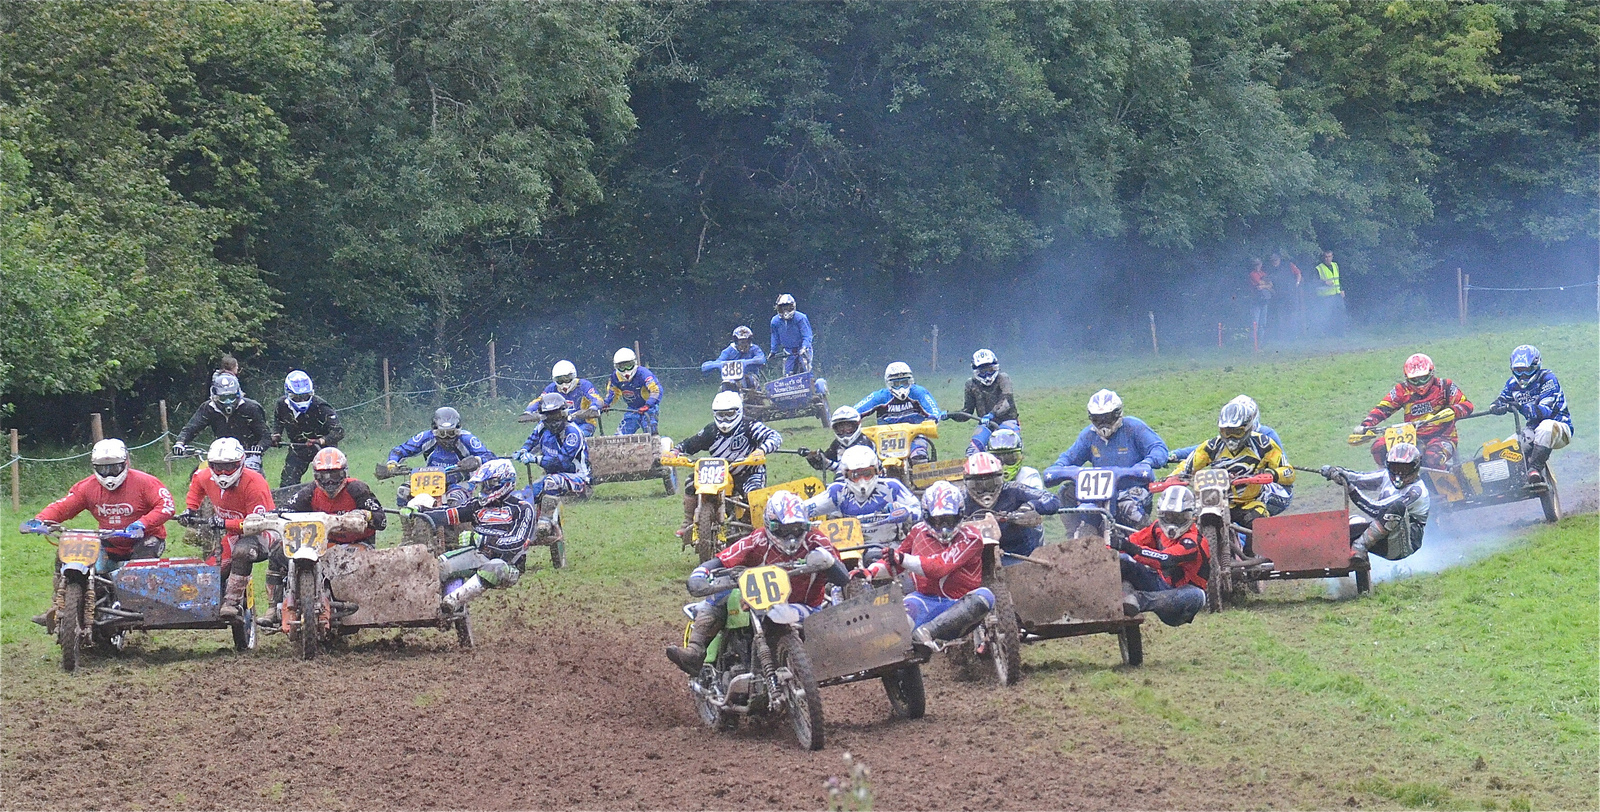 Llanthony Classic Scramble Photos September 2015 classicdirtbikerider.com..37